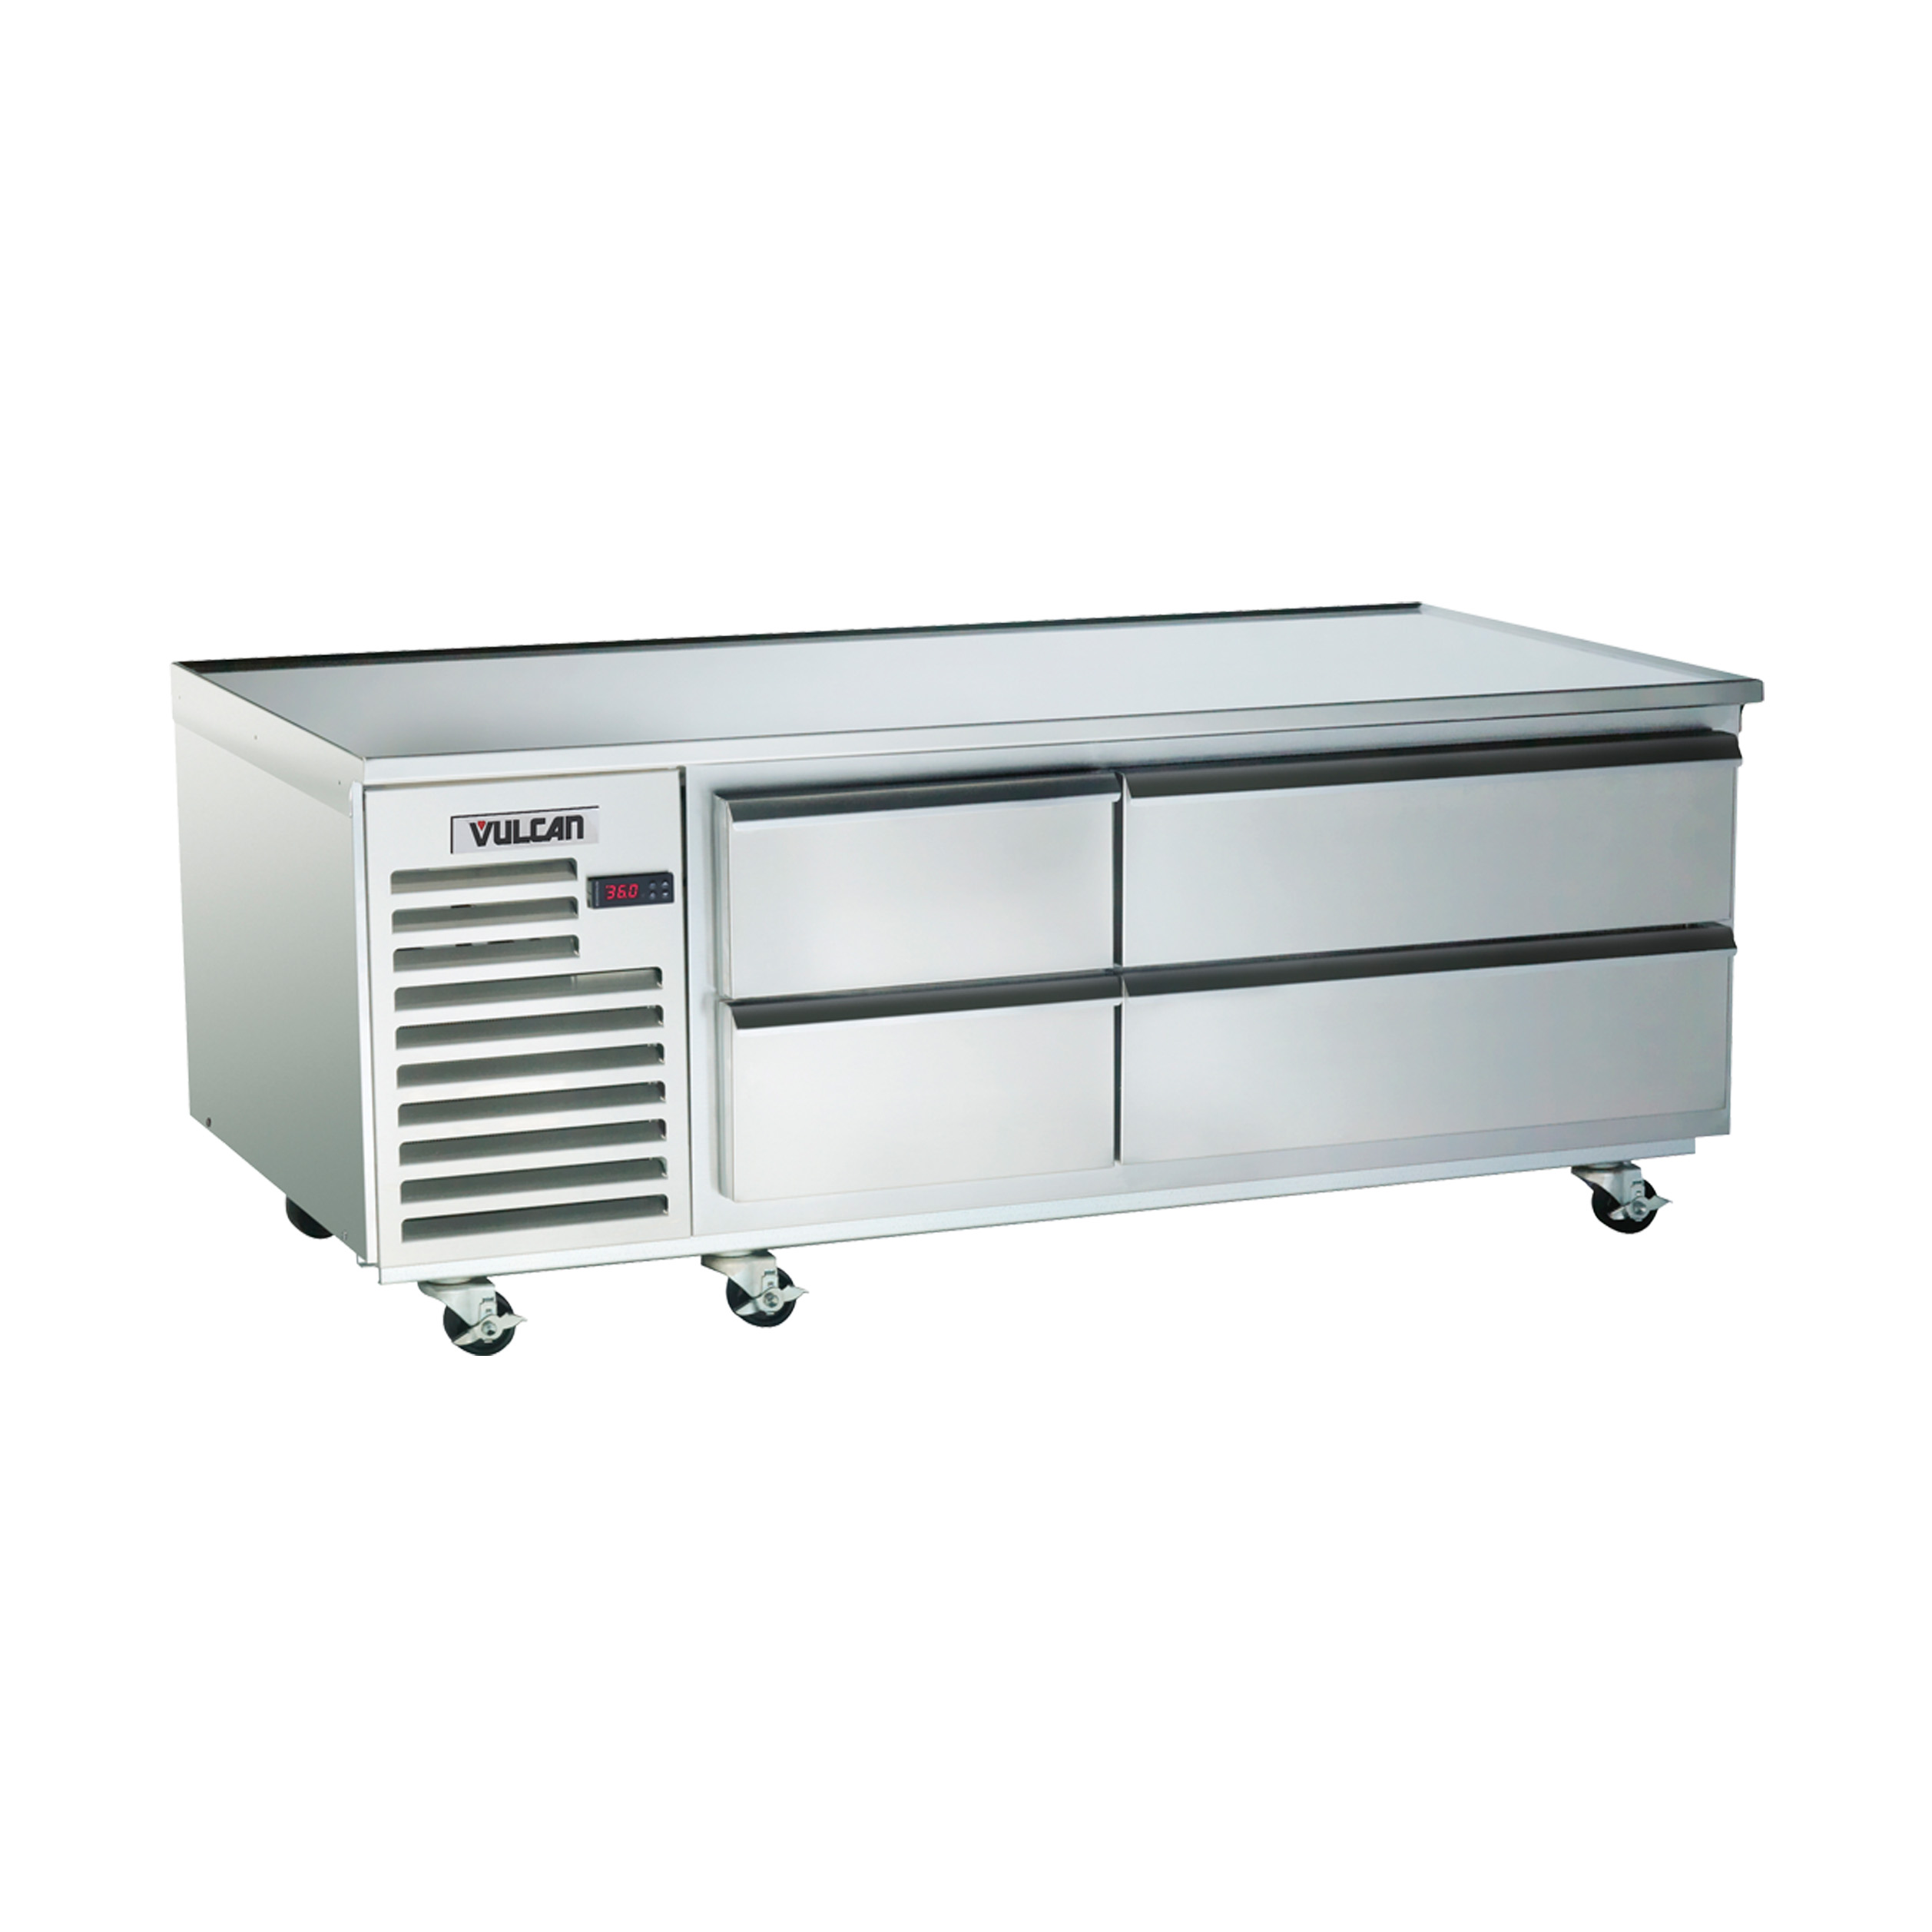 Vulcan ARS48 equipment stand, refrigerated base